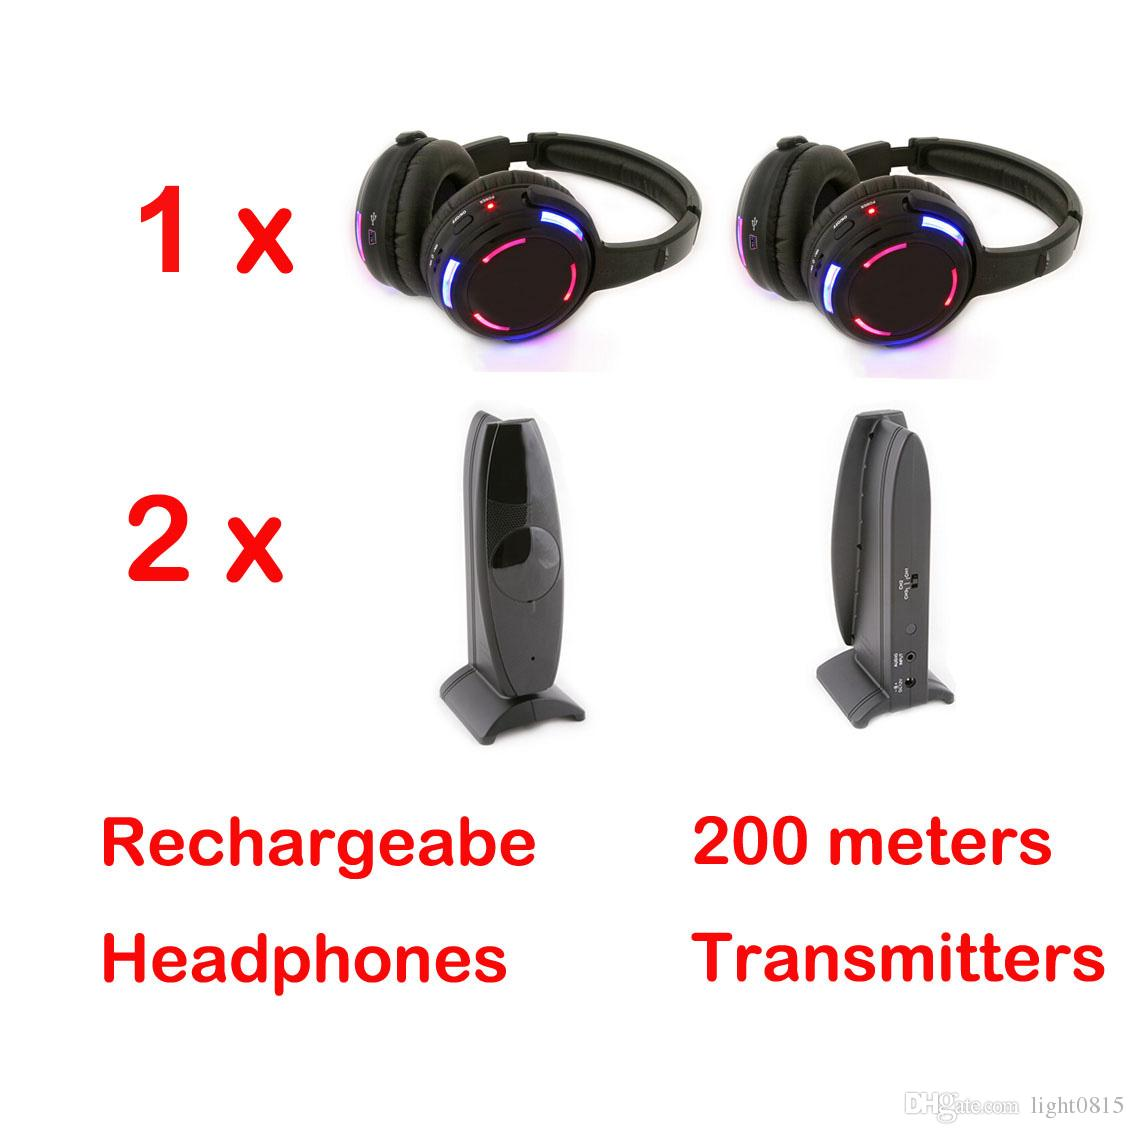 Silent Disco Sound System / Quiet Clubbing wireless headphones with Transmitter (1 silent disco headphones +2 Transmitters)